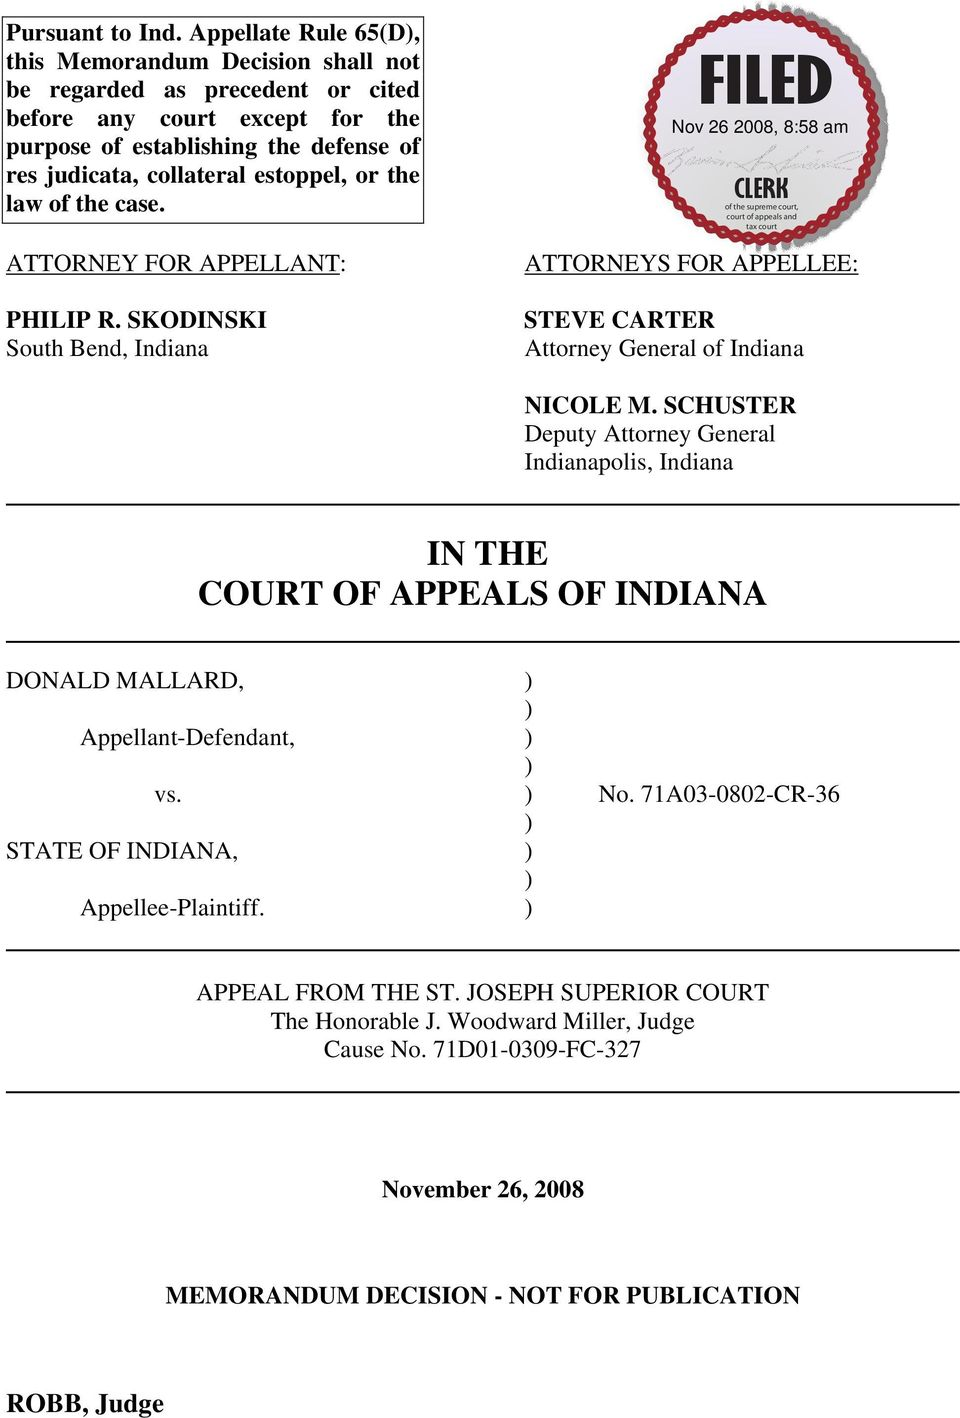 estoppel, or the law of the case. ATTORNEY FOR APPELLANT: PHILIP R. SKODINSKI South Bend, Indiana ATTORNEYS FOR APPELLEE: STEVE CARTER Attorney General of Indiana NICOLE M.